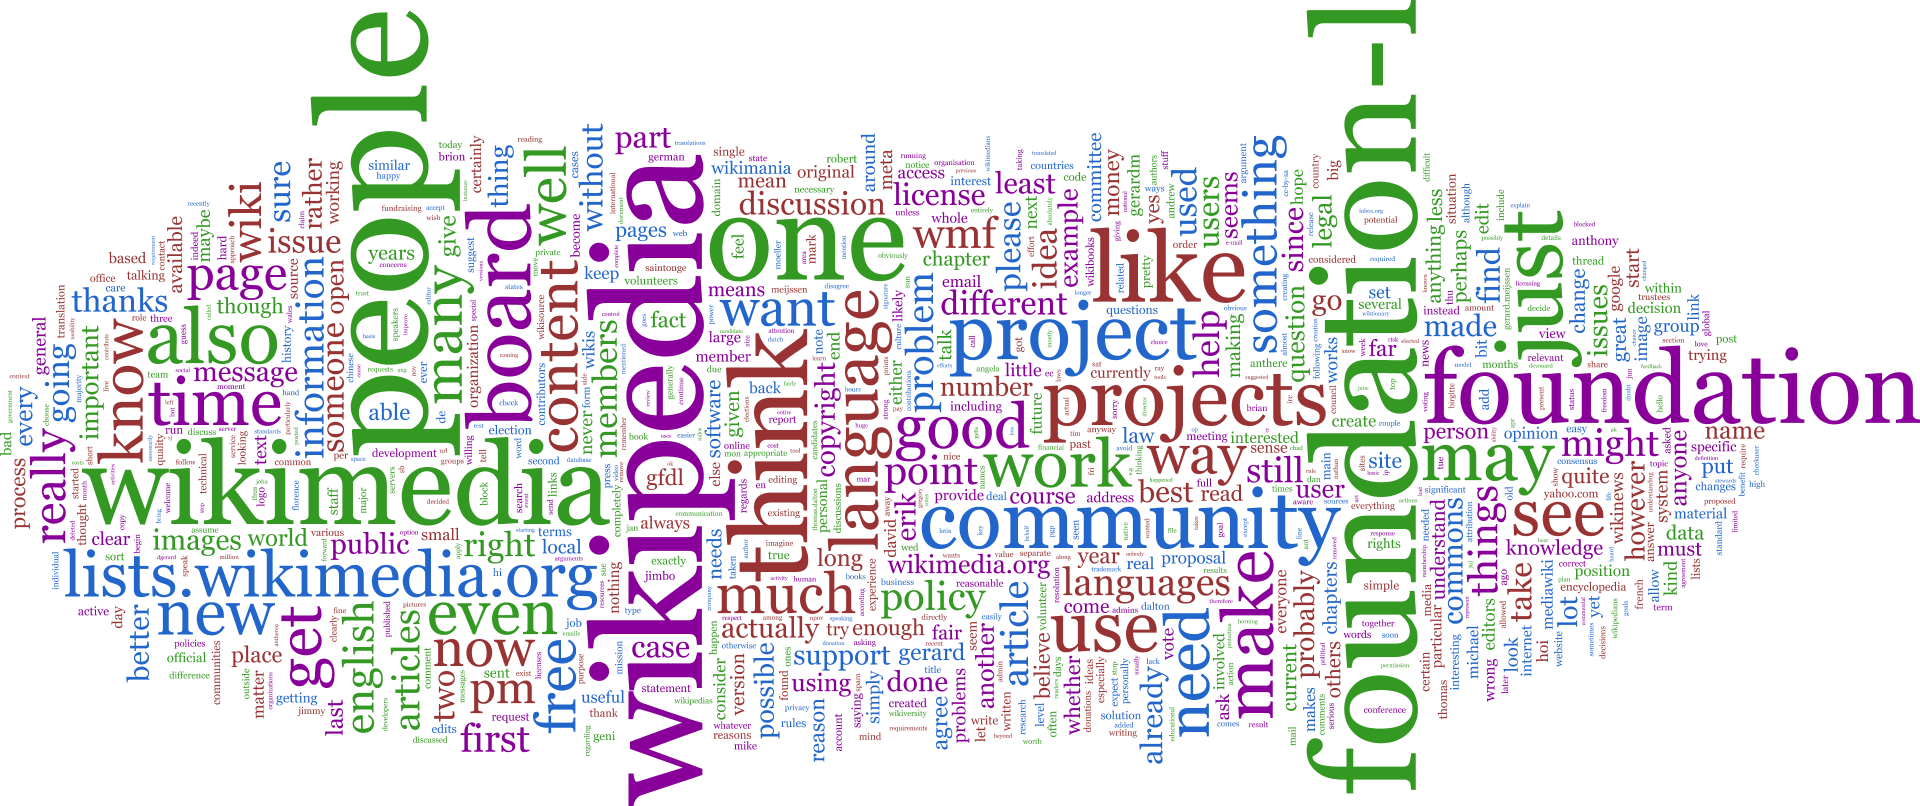 Foundation-l_word_cloud_without_headers_and_quotes